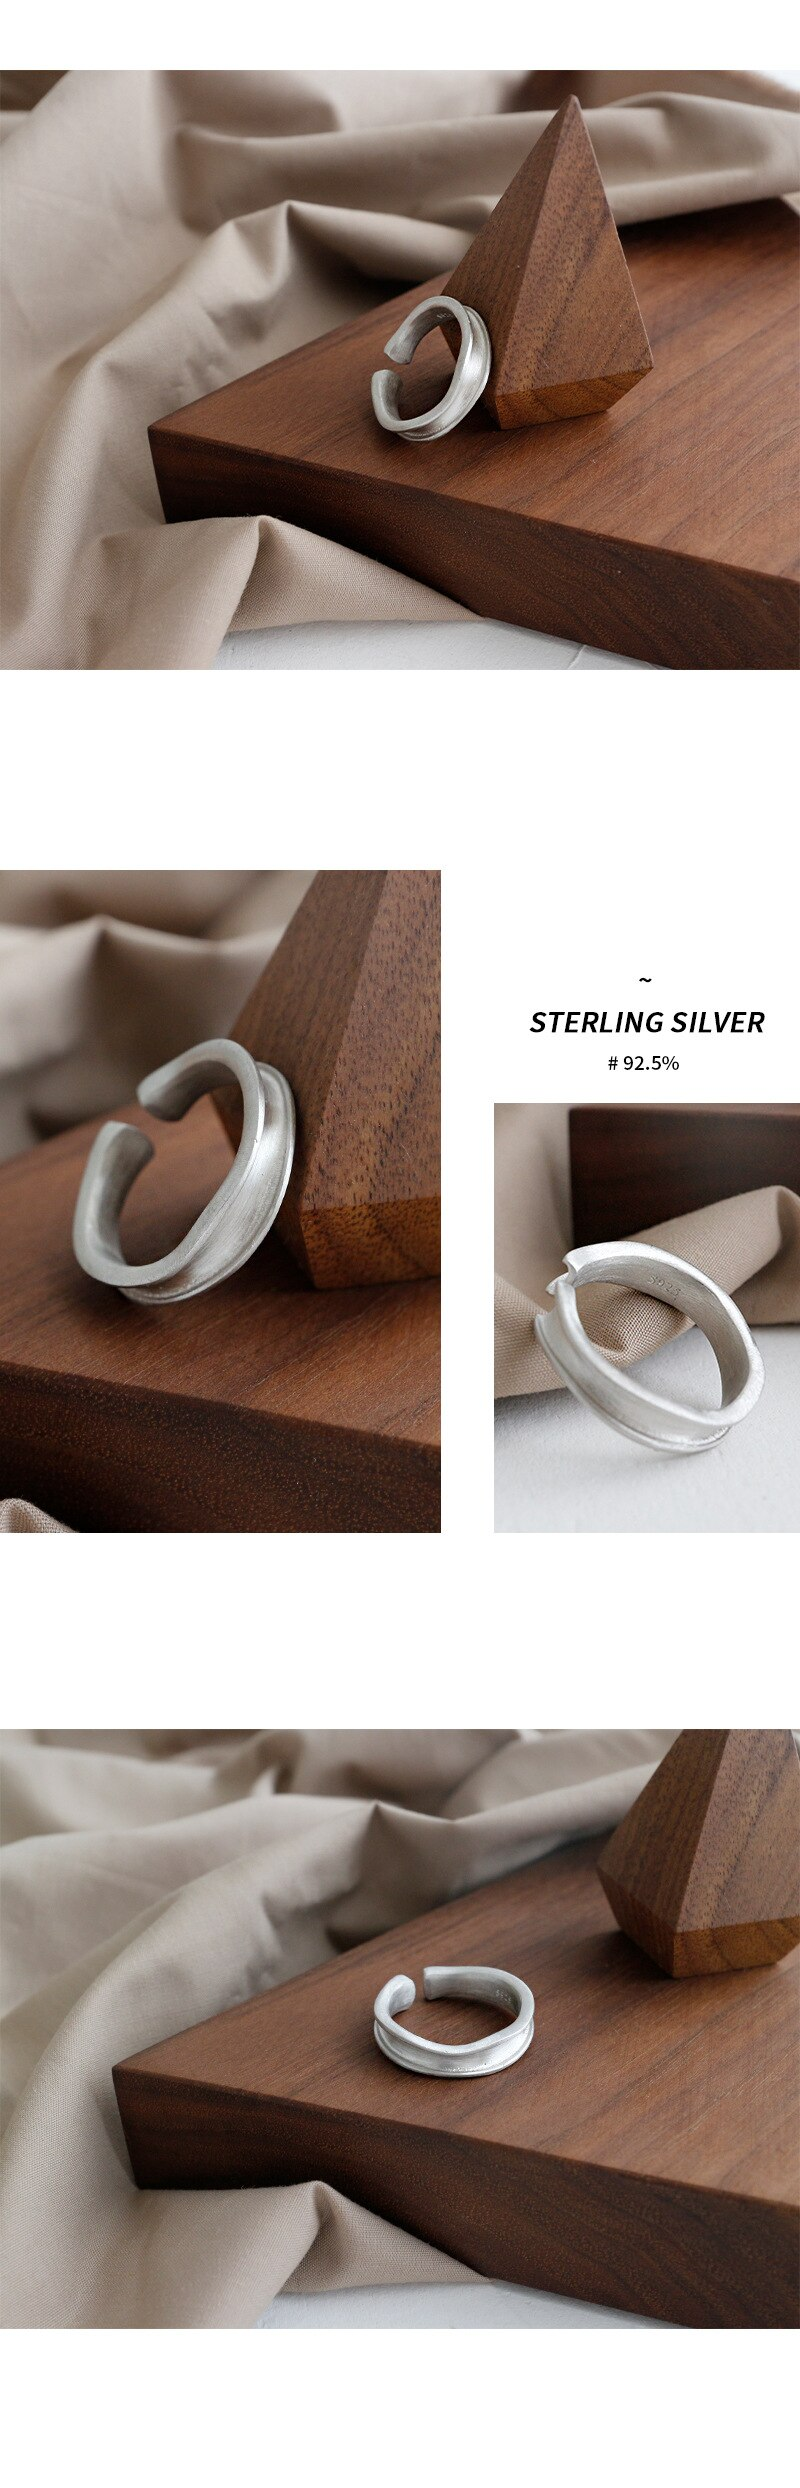 Silvology 925 Sterling Silver Irregular Rings Matte Concave Convex Minimalist Rings for Women 2019 Silver 925 Jewelry Girls Gift